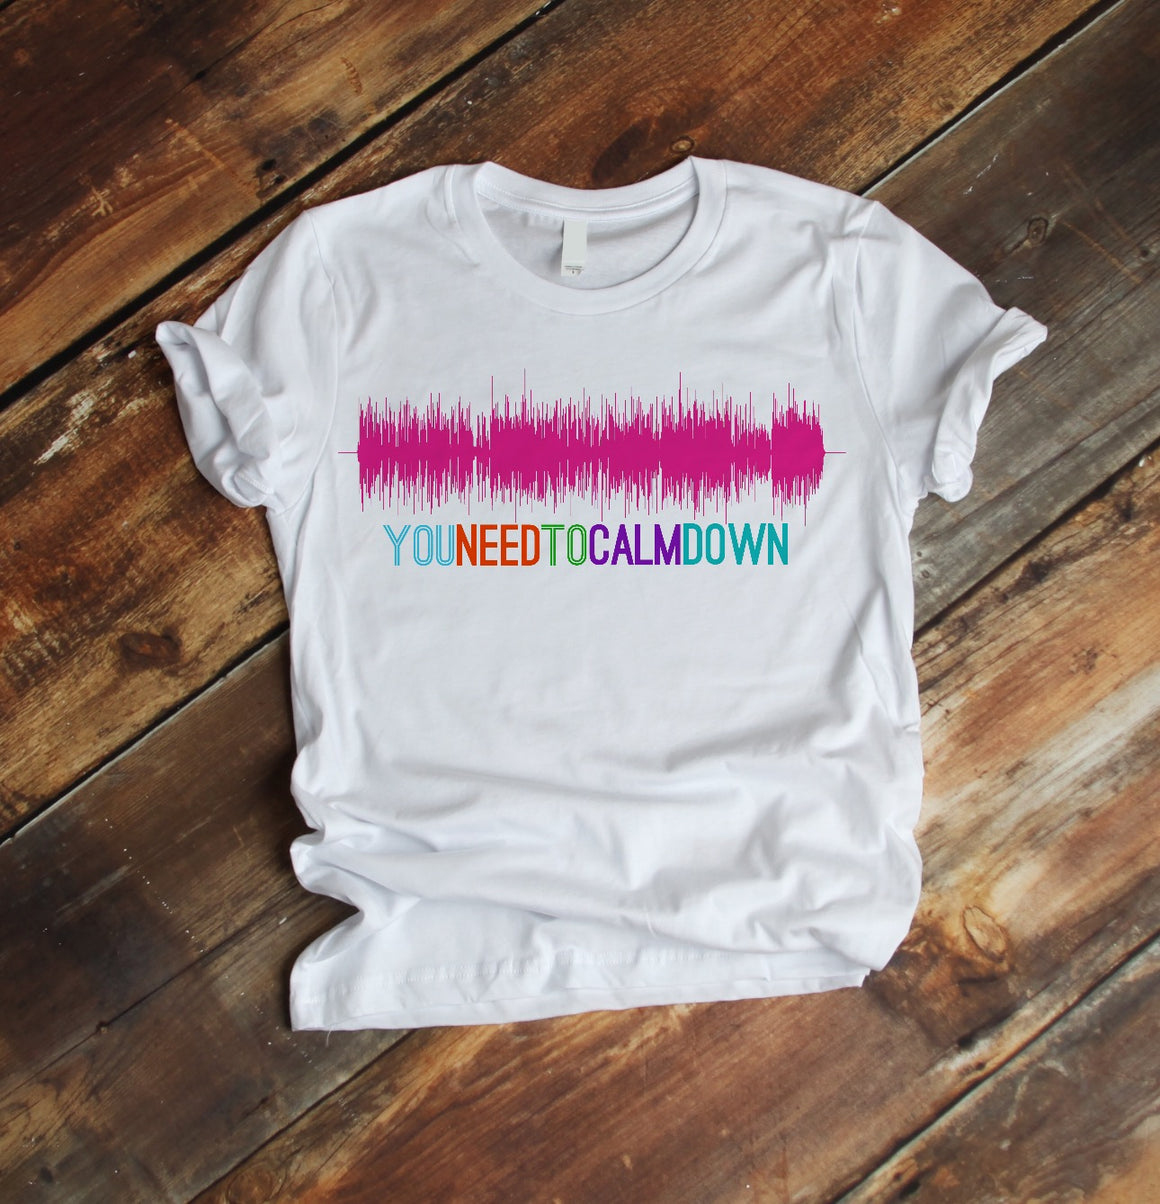 Sound Art Shirt - You Need to Calm Down | Sound Wave Shirt